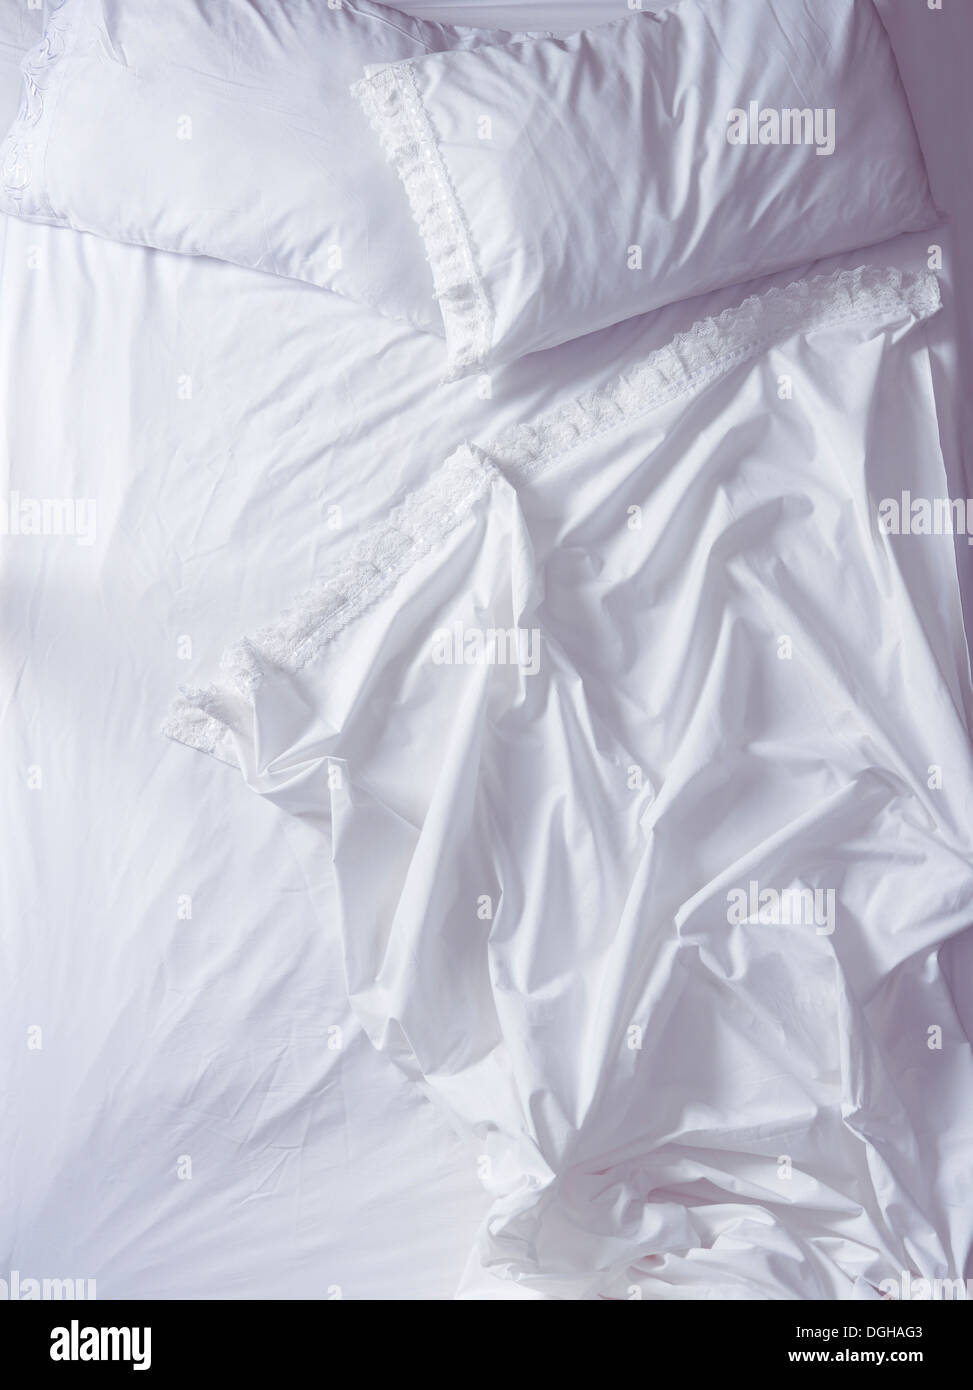 Empty unmade bed with ruffled white sheets in morning light, high angle view. - Stock Image